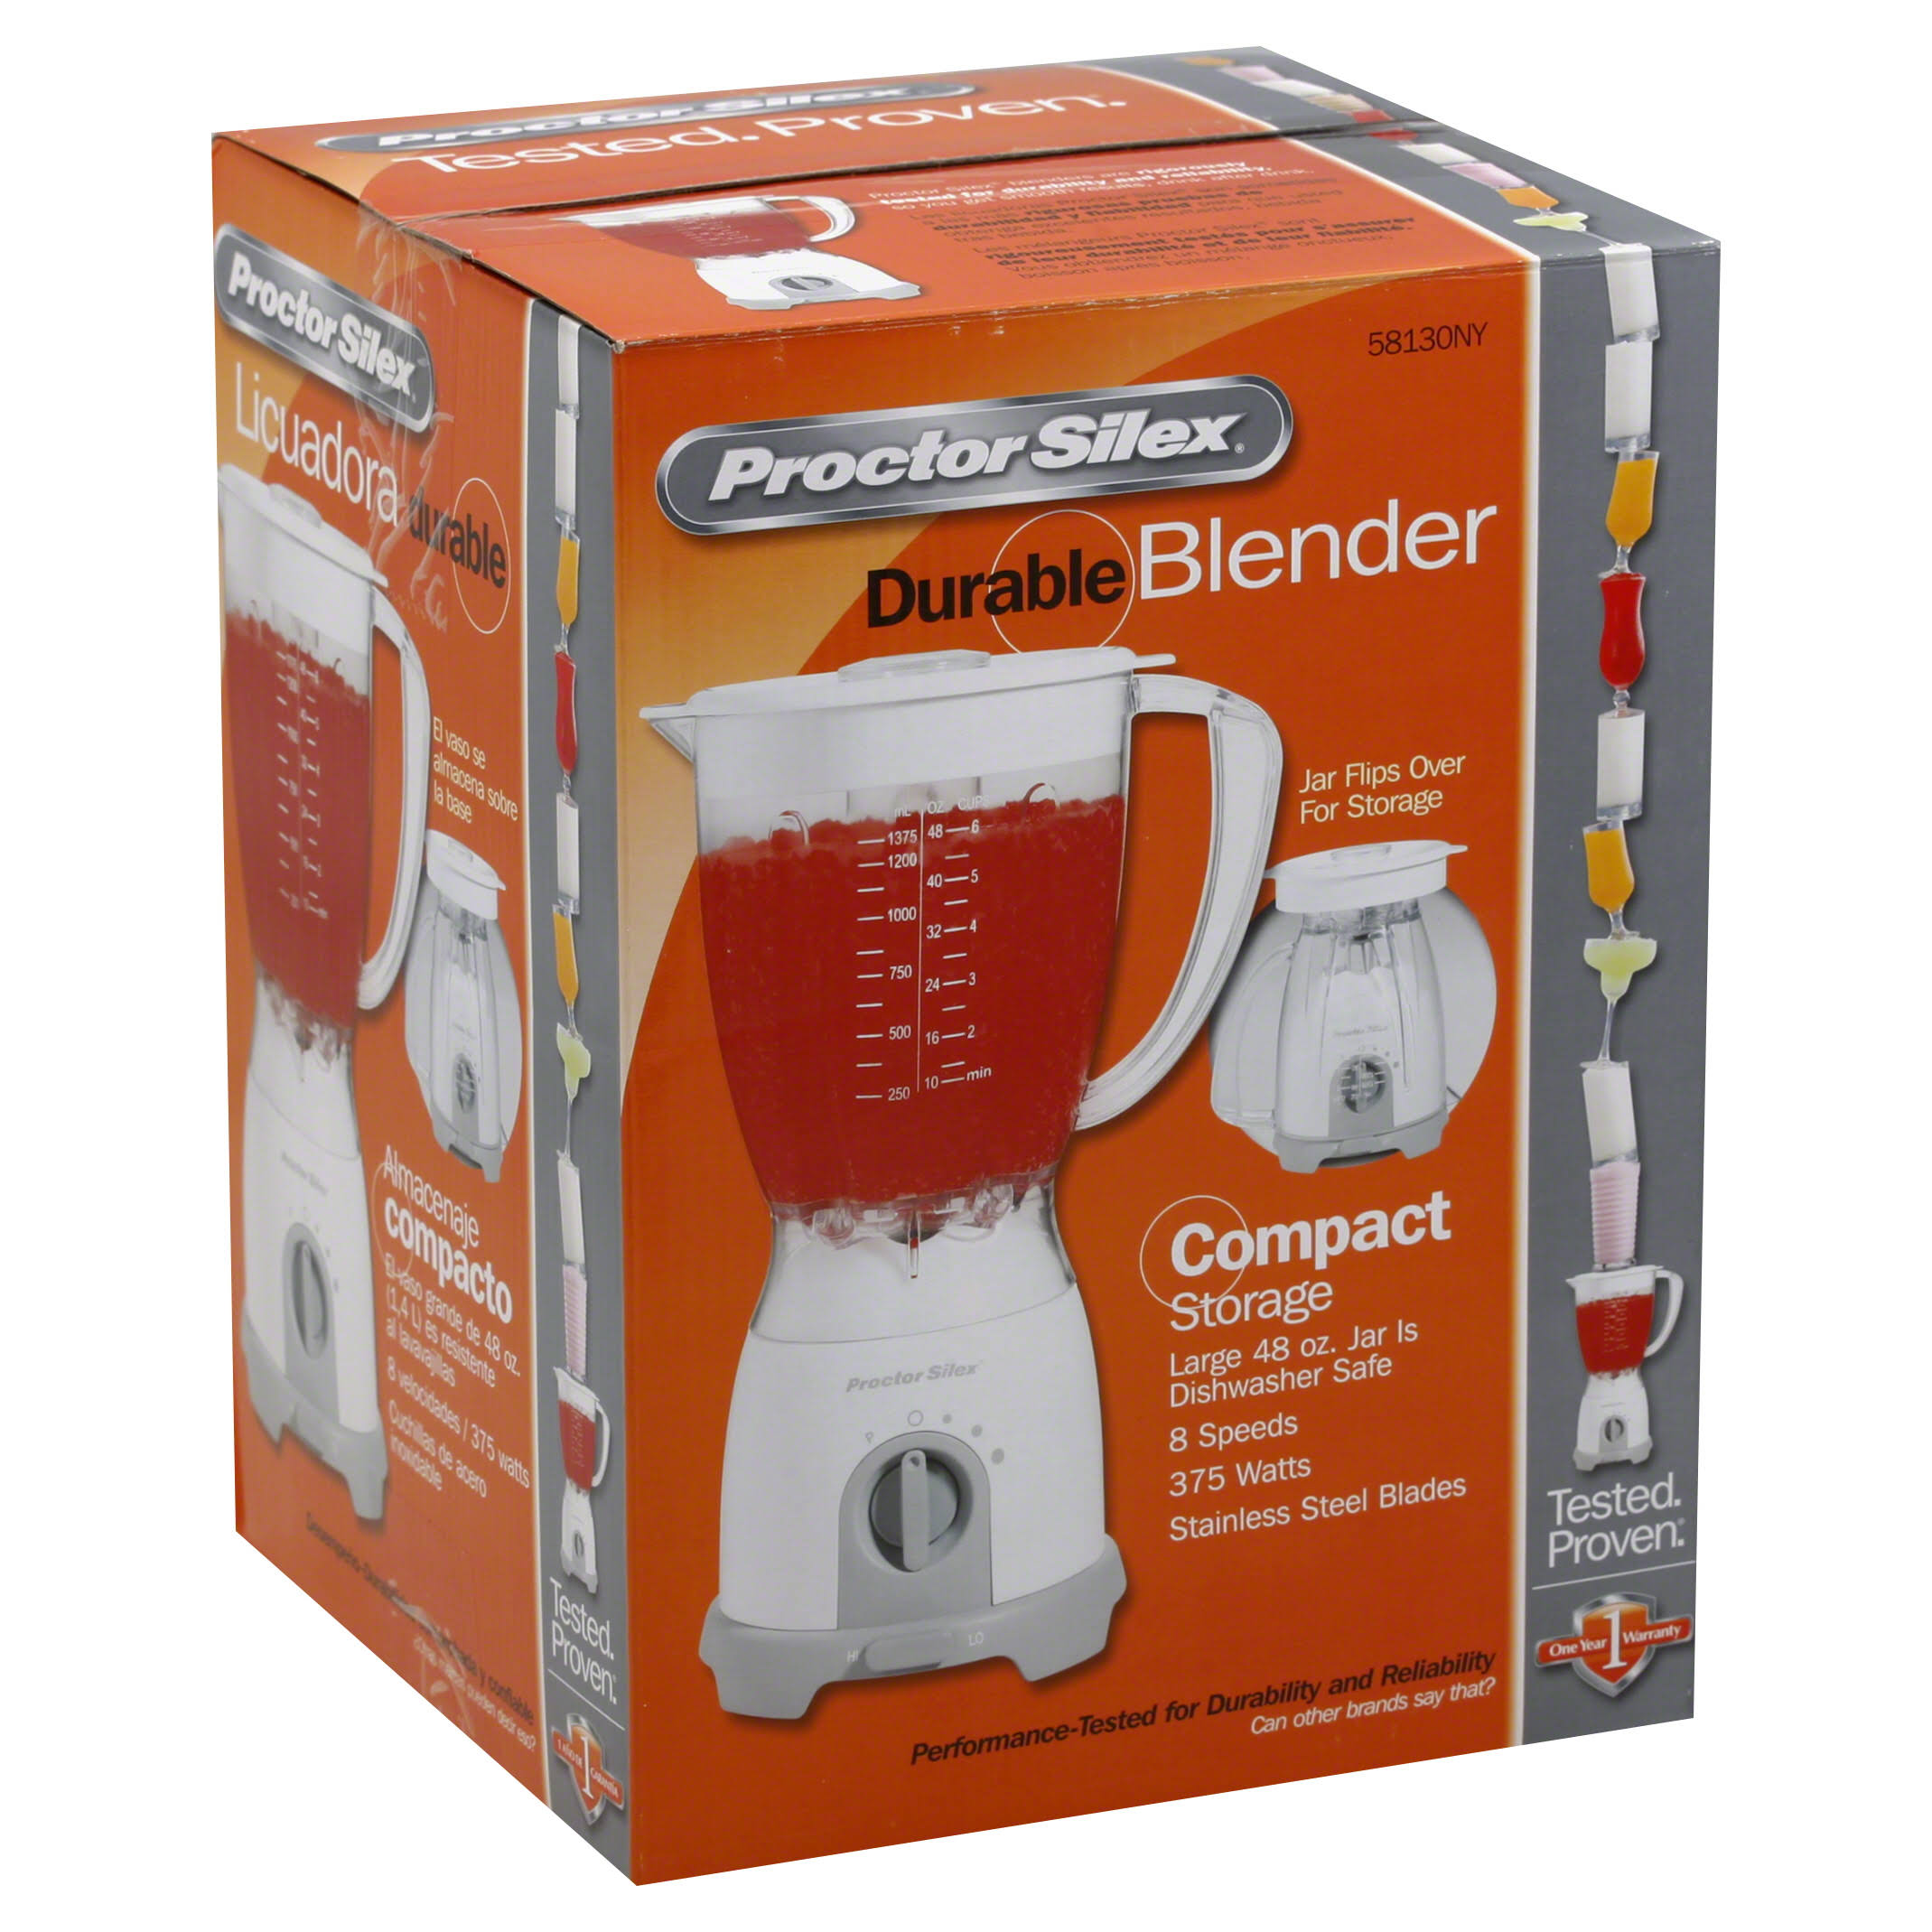 Proctor Silex Plus 58130PH Blender - White